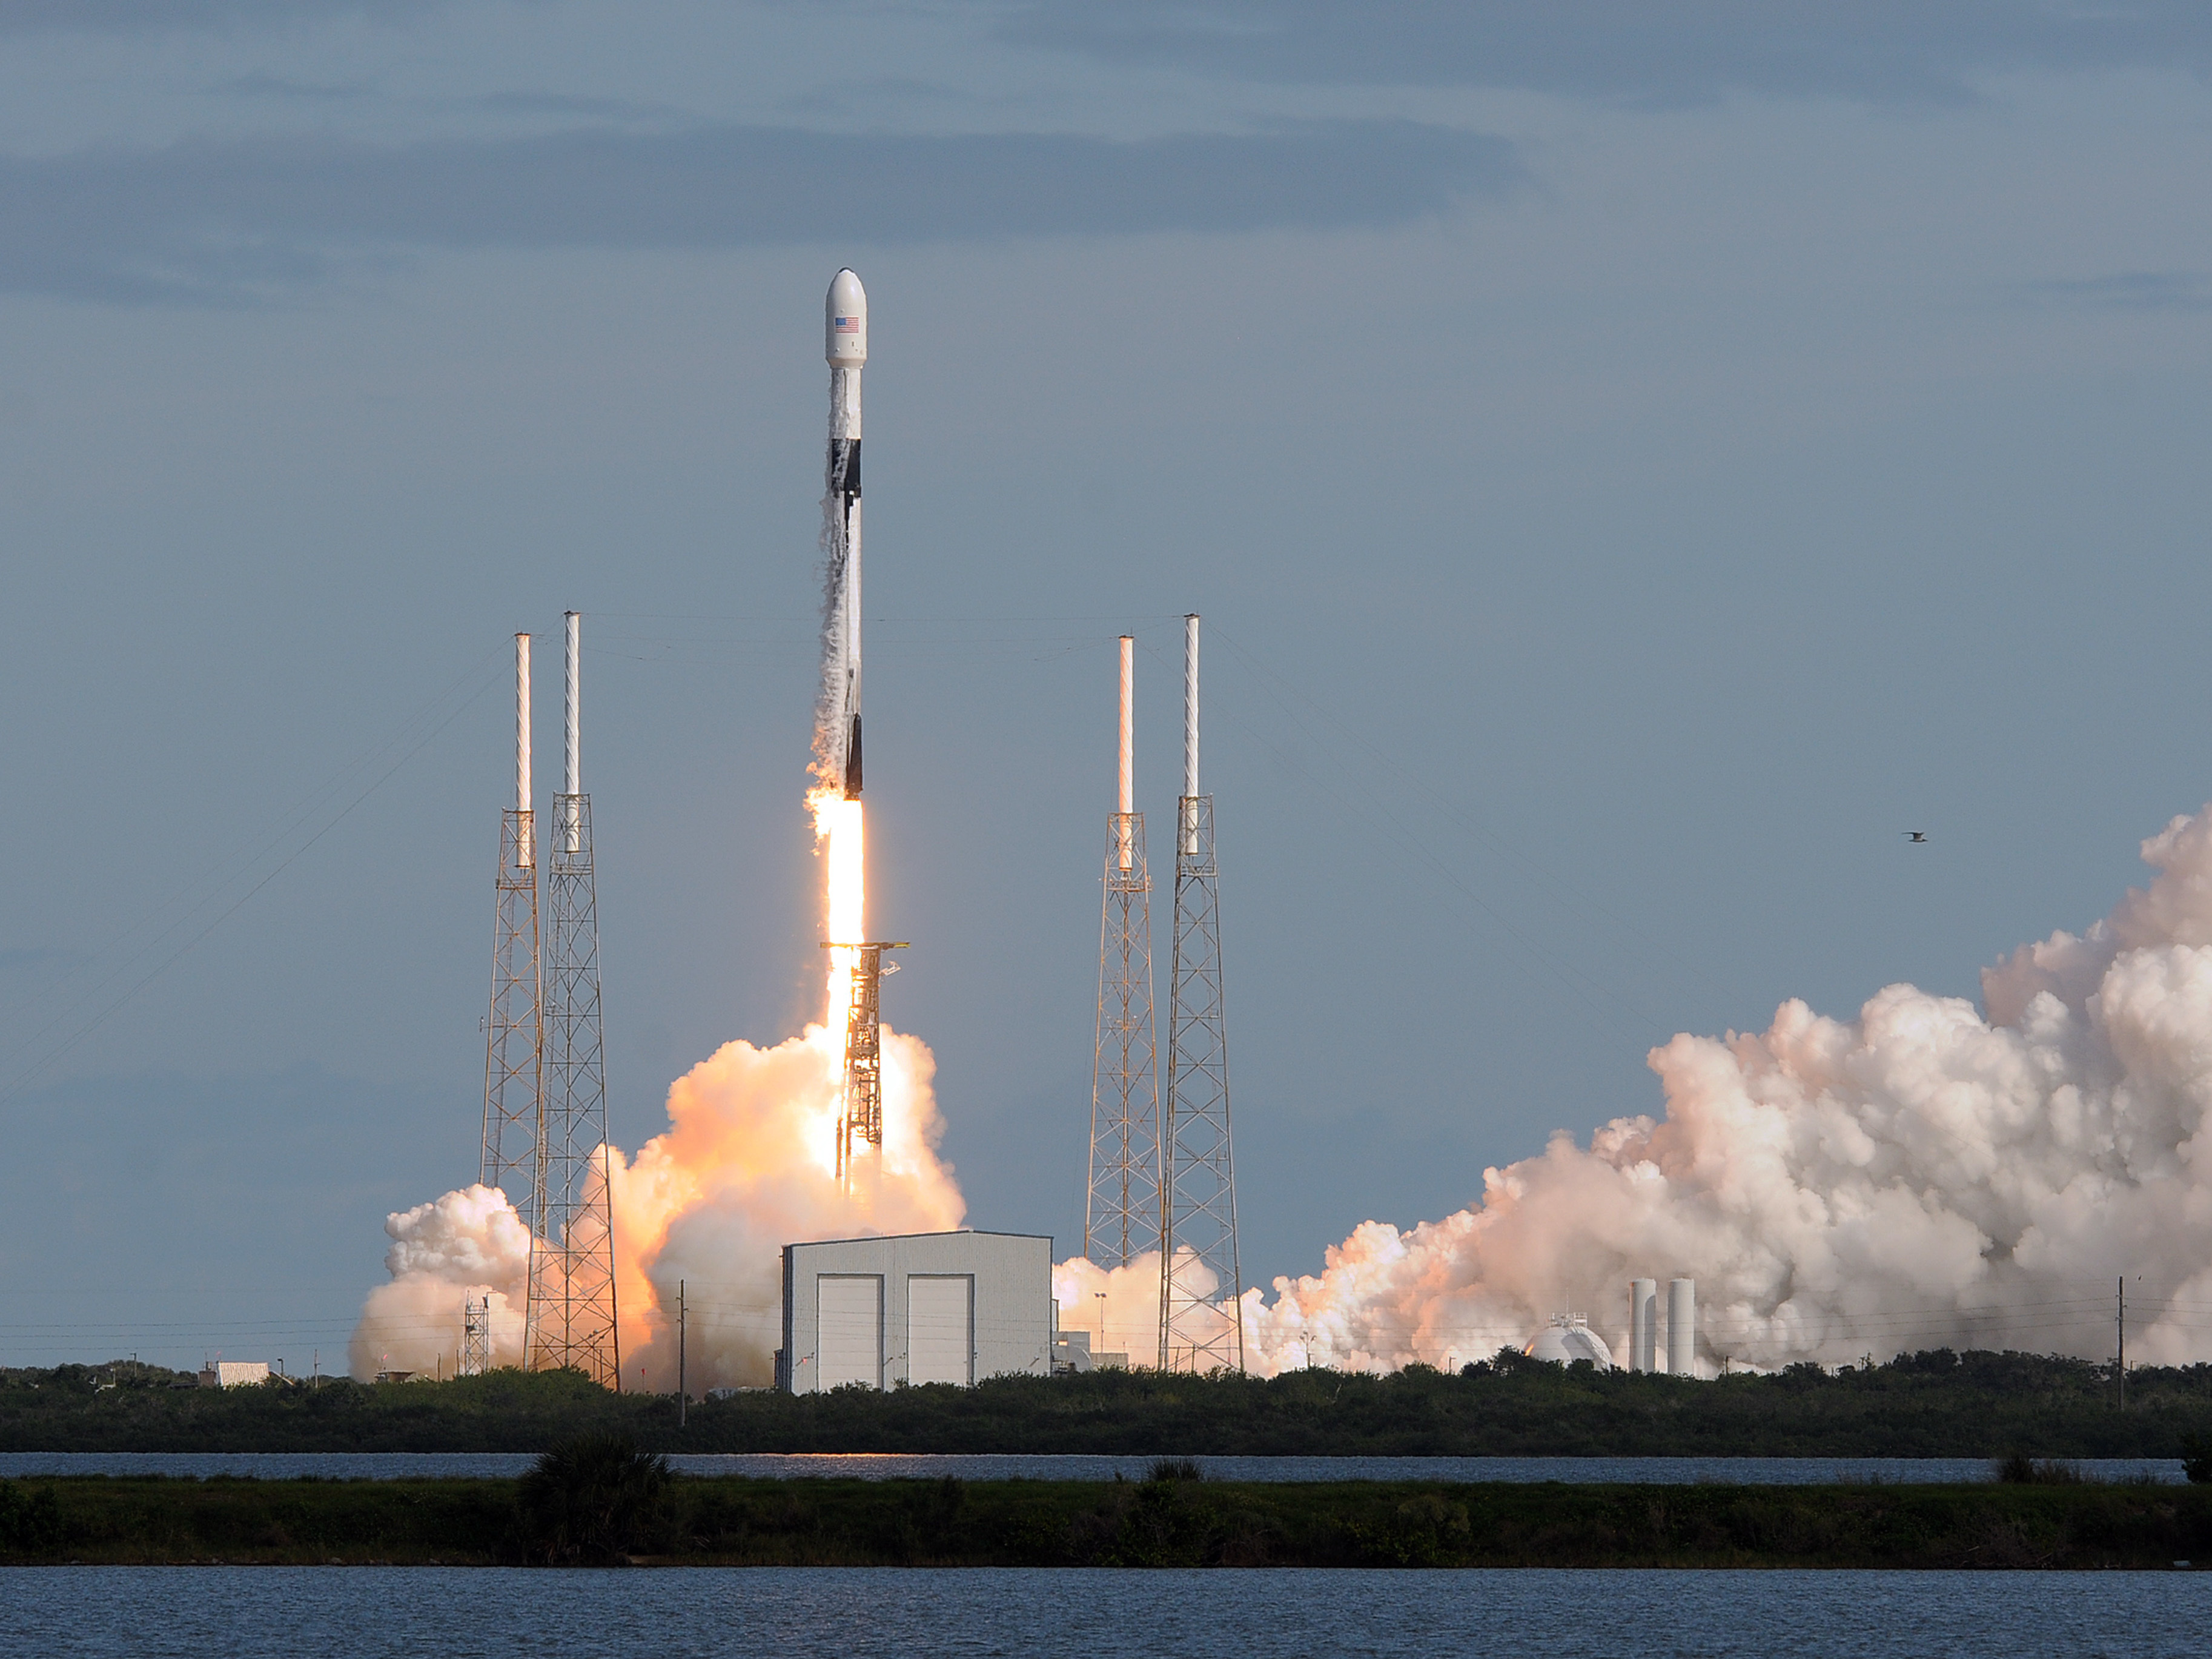 As SpaceX Launches Dozens Of Satellites At A Time, Some Fear An Orbital Traffic Jam